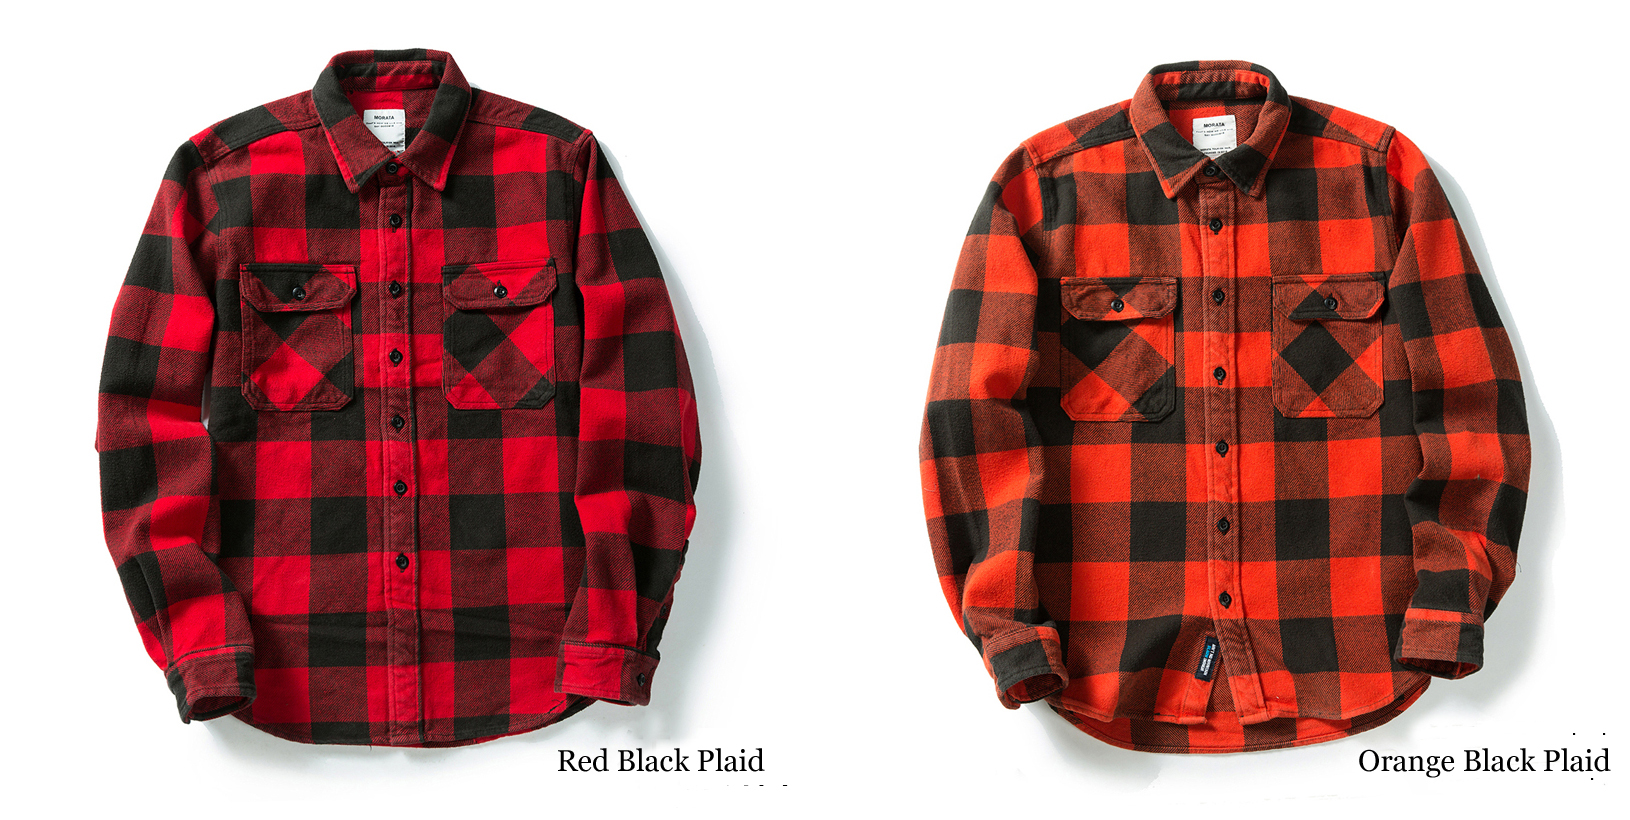 H69e707614ade40b4a926ed6afeddcfc7a 100% cotton heavy weight retro vintage classic red black spring autumn winter long sleeve plaid shirt for men women